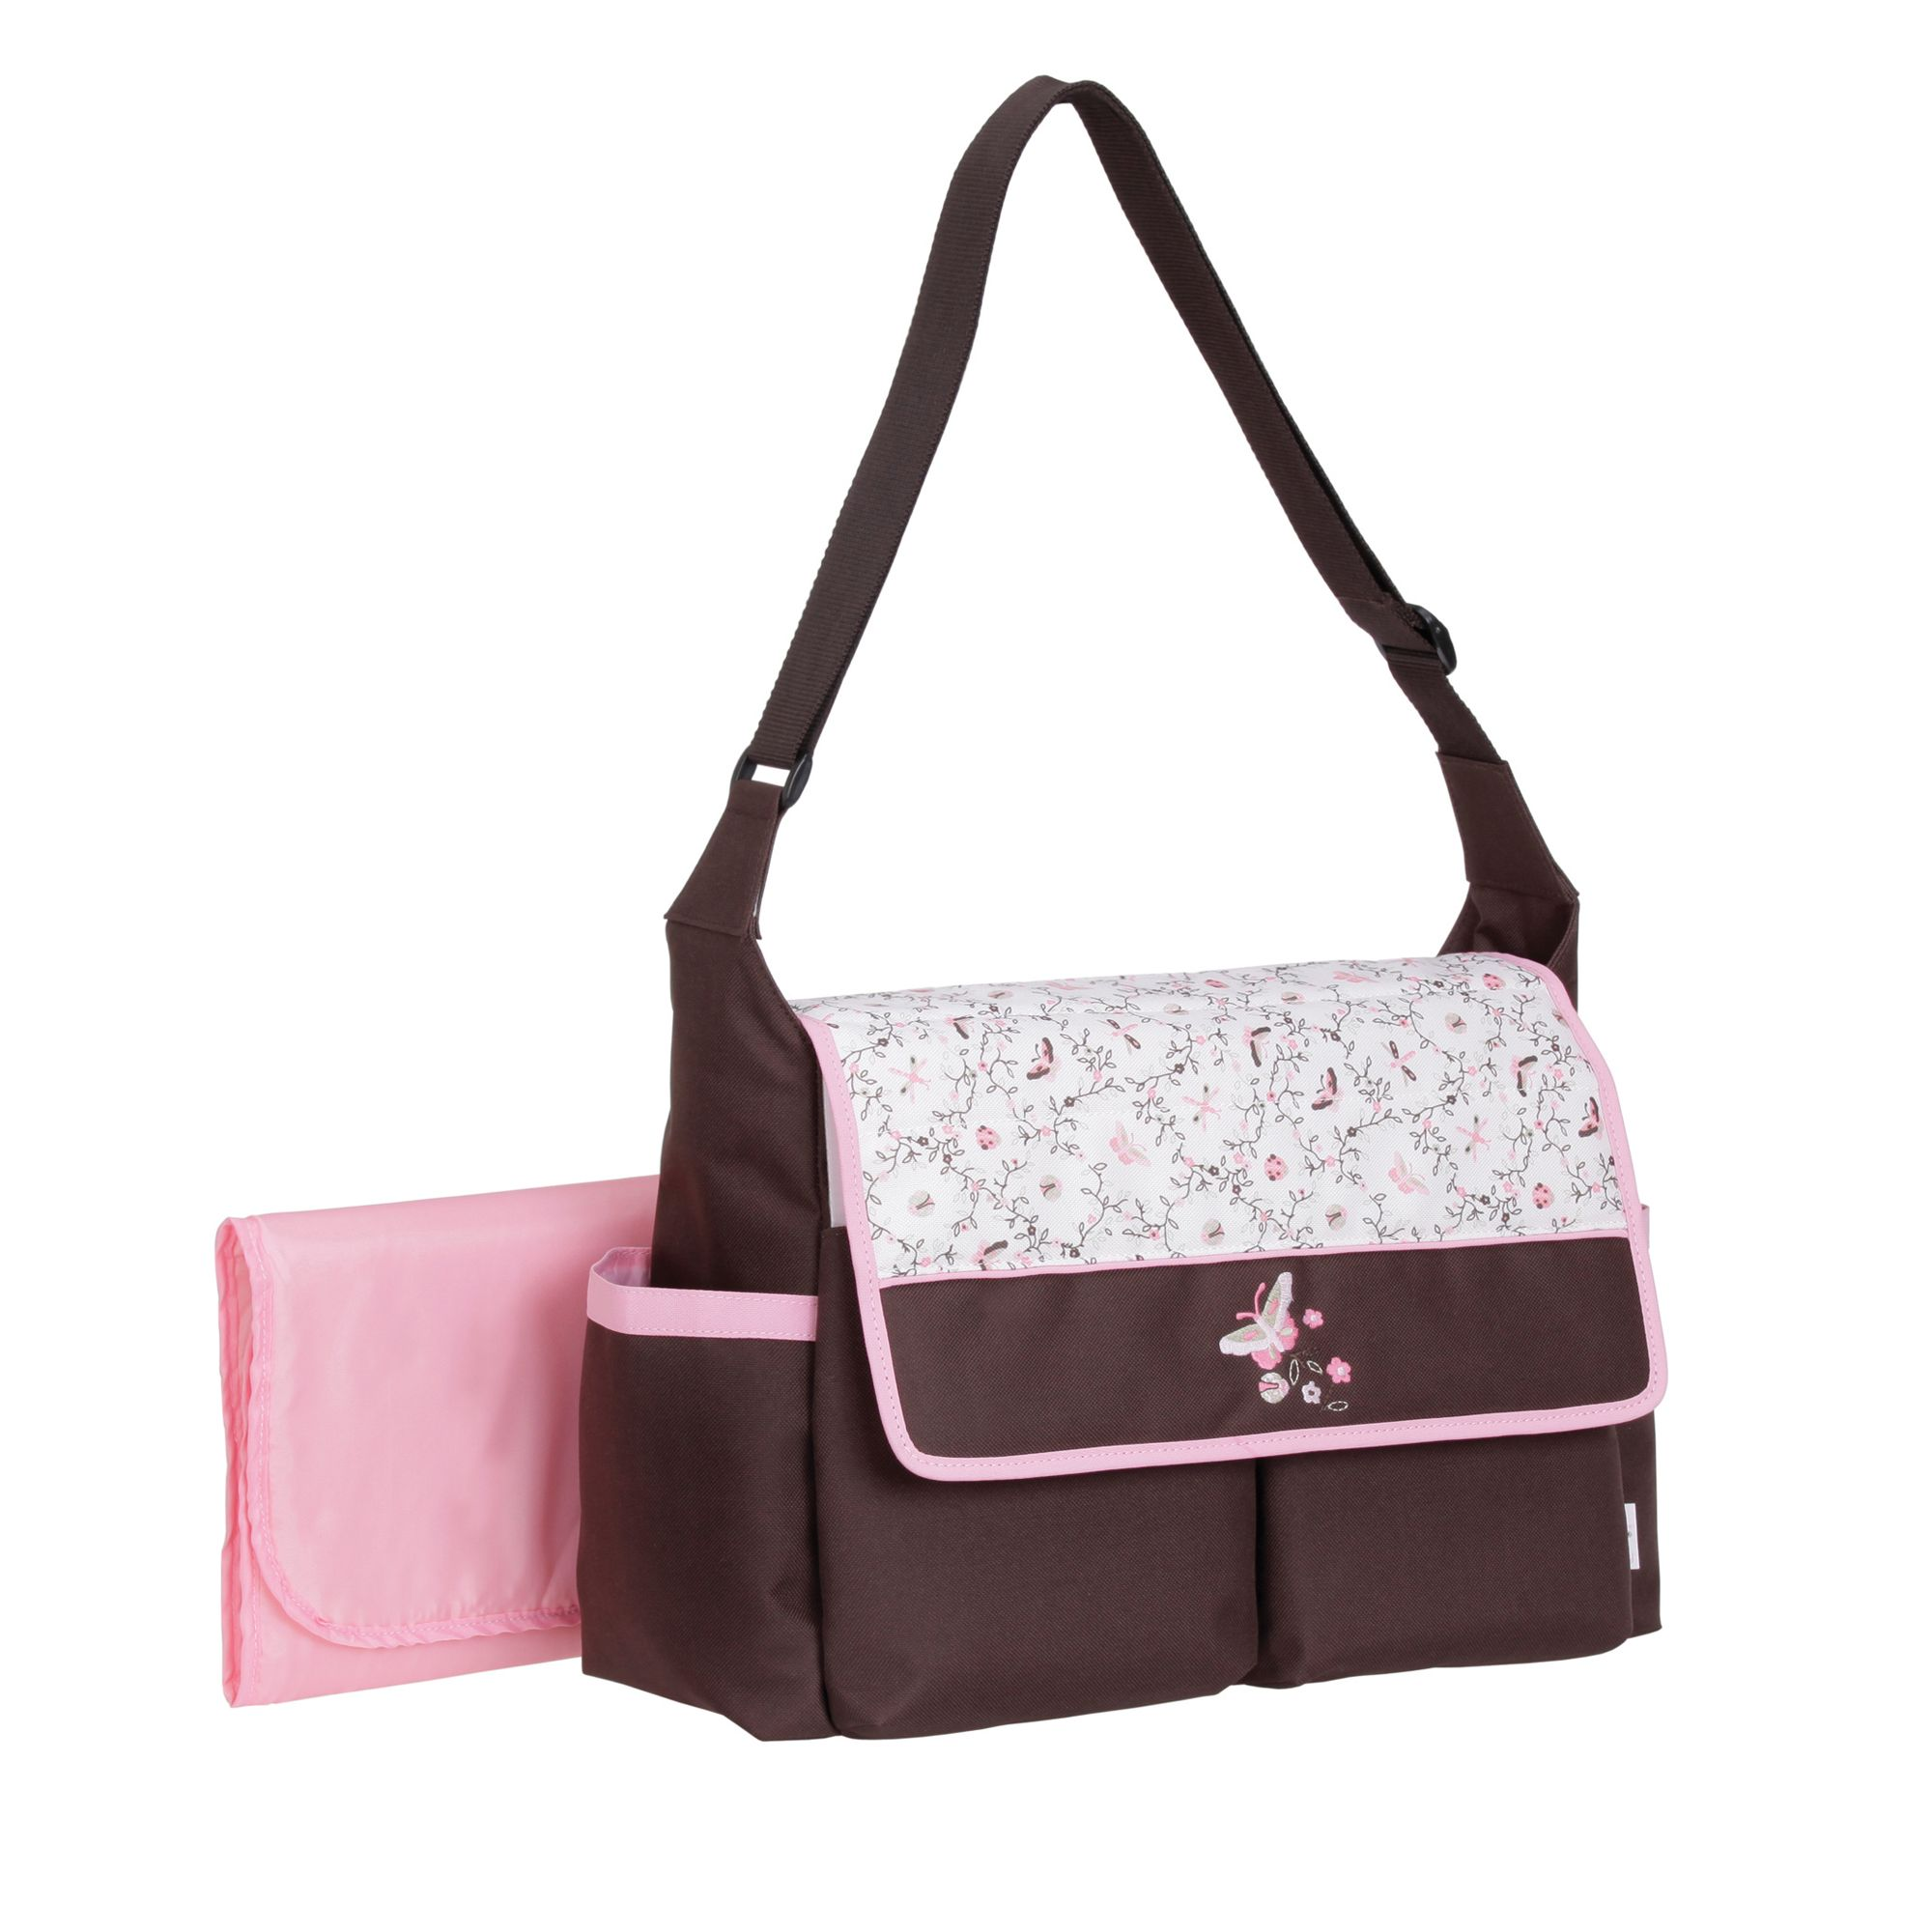 Multiple Pocket Diaper Bag Moving With Baby Accessories Kmart